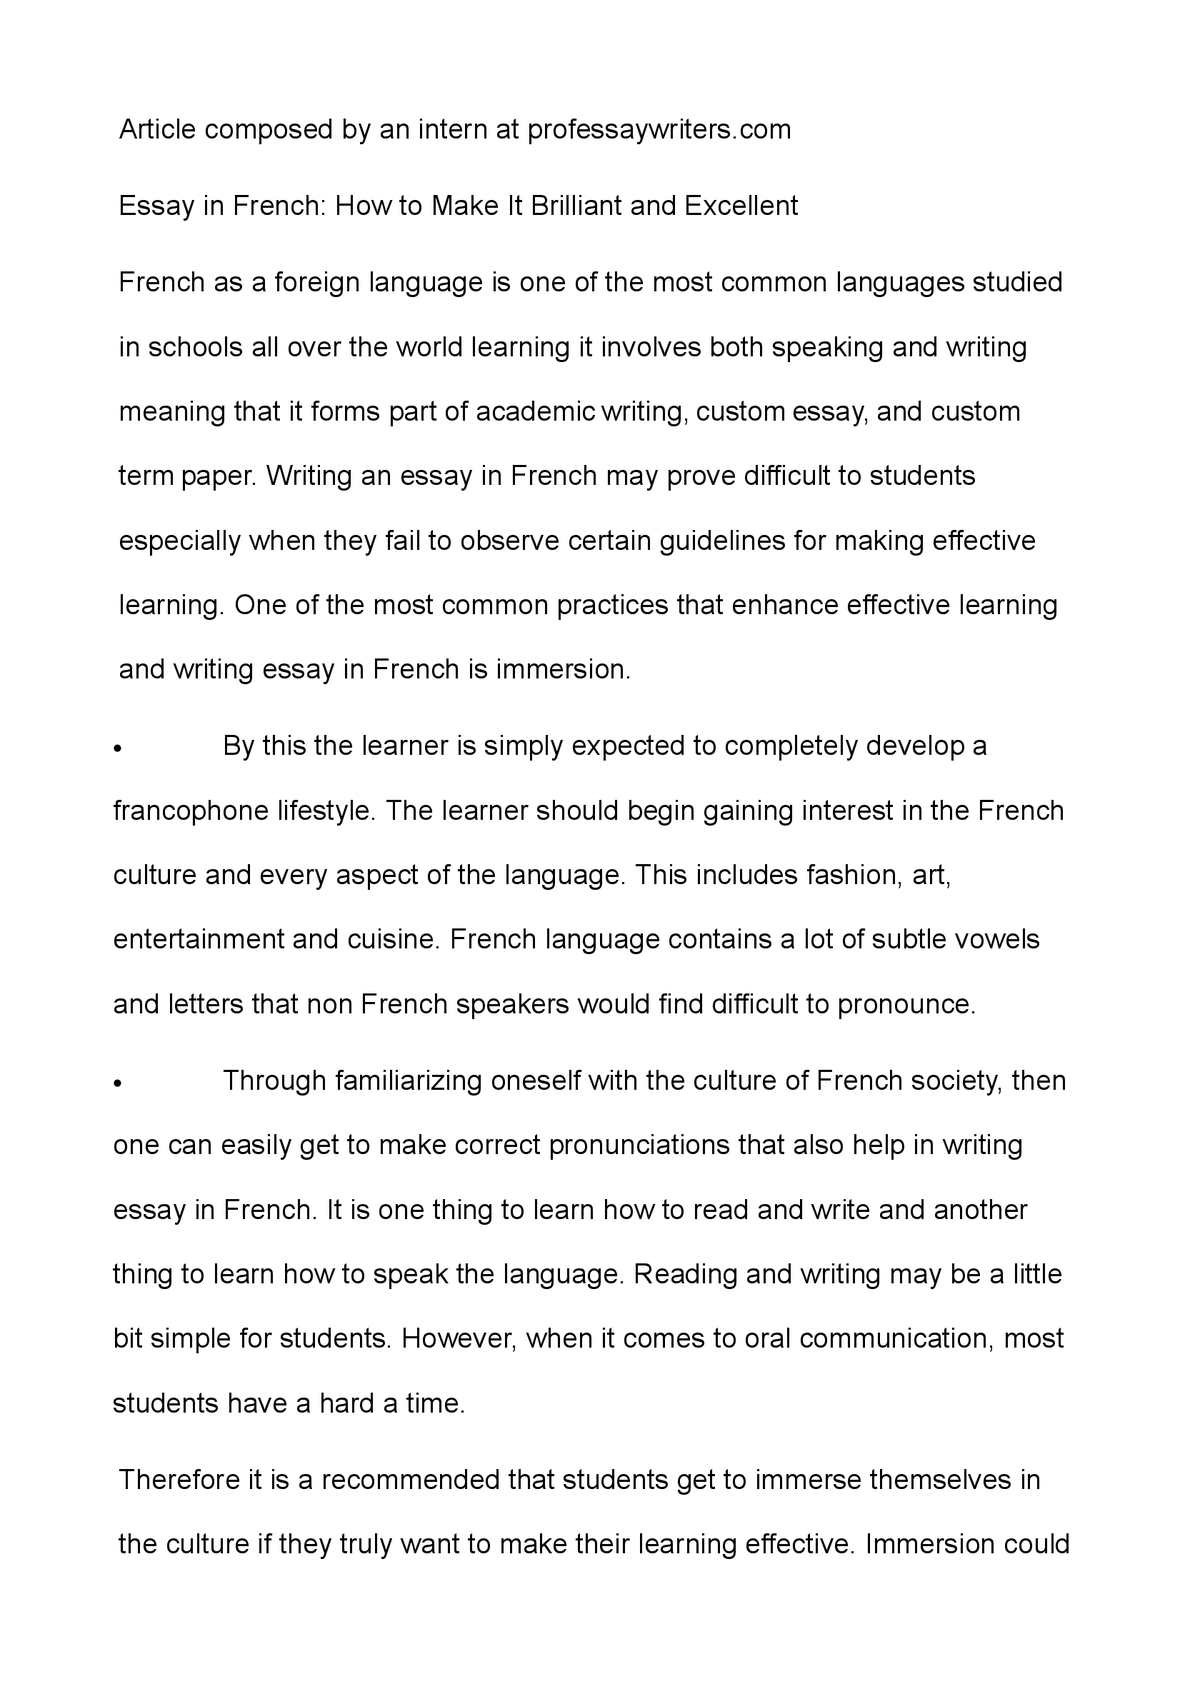 003 Essay Example In French Frightening Small On My Family Writing Language About Myself Full